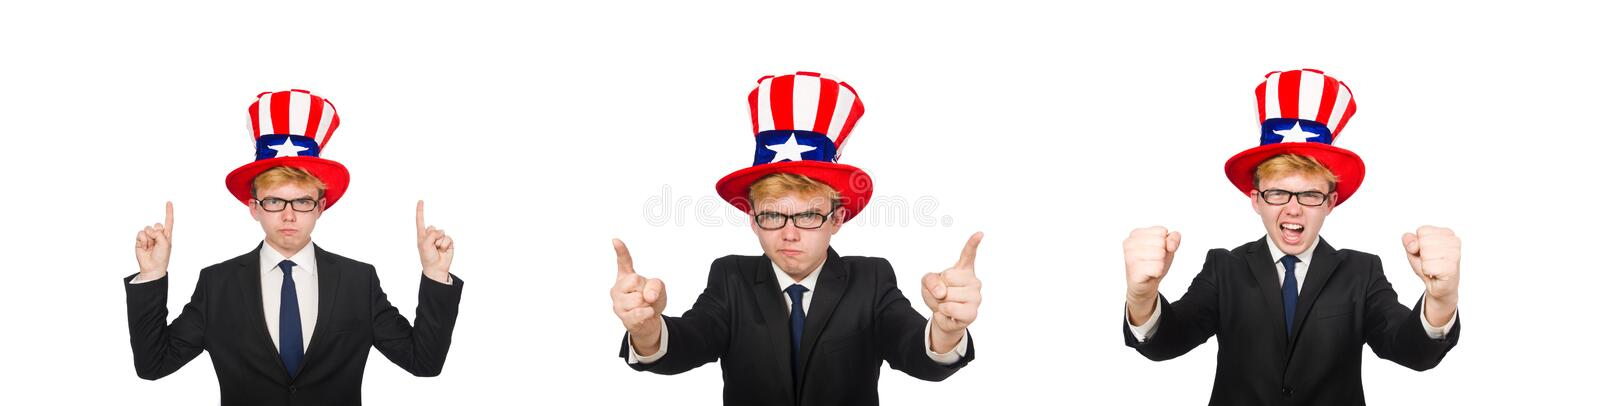 Businessman with american hat isolated on white royalty free stock images